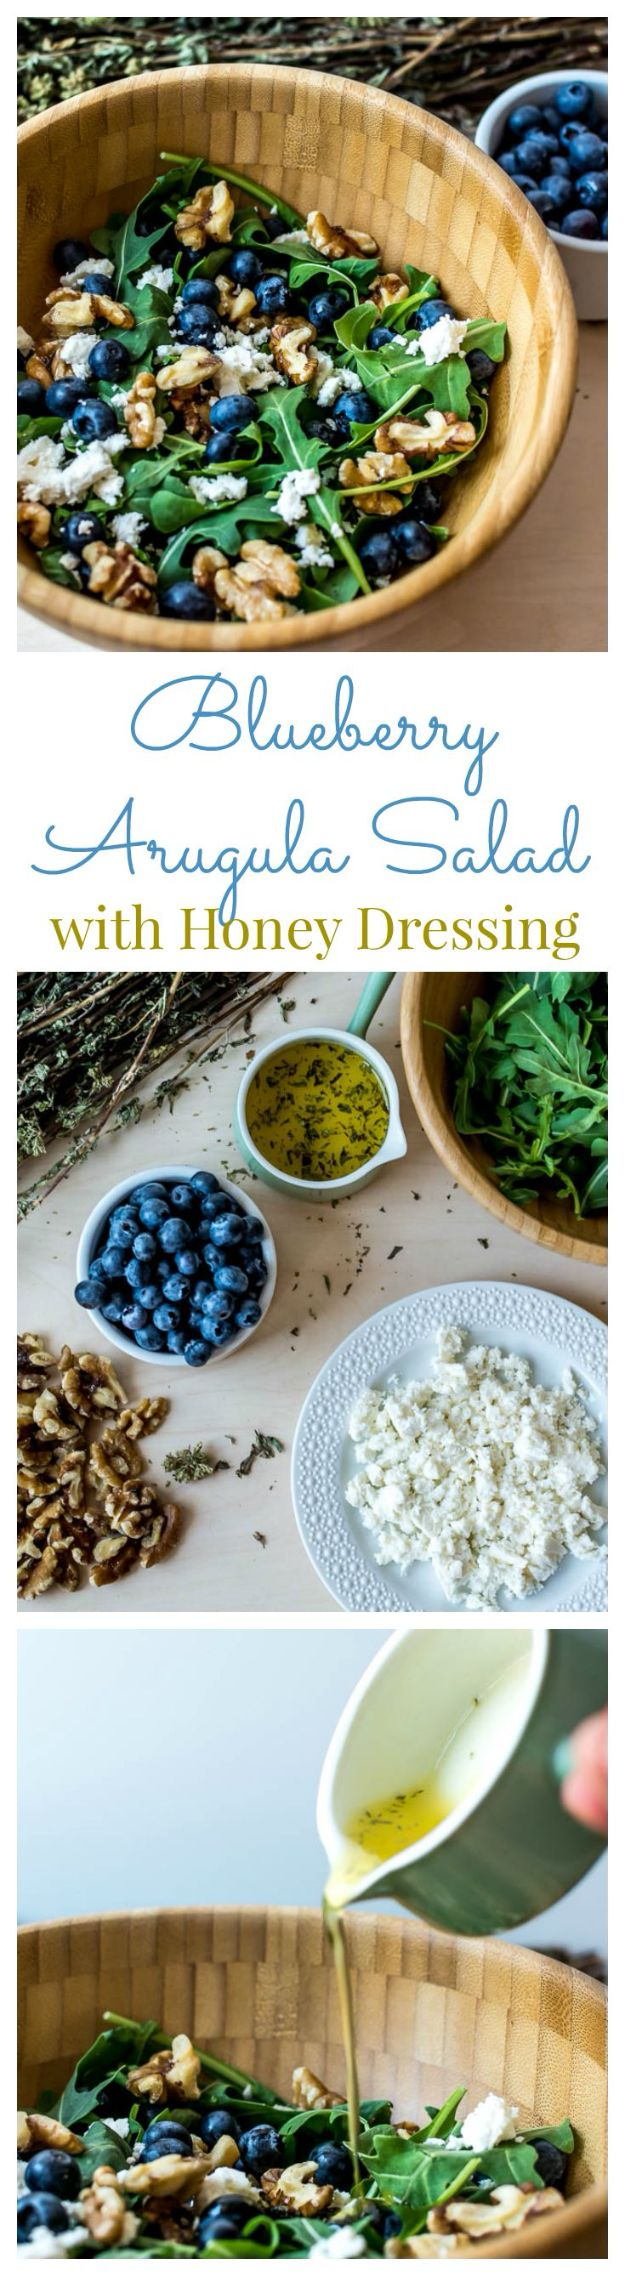 Summer Salad Recipes - Blueberry Arugula Salad - Easy Salads to Make for Summer Dinners, Picnic, Barbecue and Take To Work Lunches - Grilled Foods, Fruits, Chicken, Tuna and and Shrimp Salad - Healthy Meals on A Budget - Vegetarian and Vegan Recipe Ideas - Homemade Salad Dressings and Fresh Ingredients make the Best Salads #salads #saladrecipes #lunchrecipes #recipes #summer http://diyjoy.com/summer-salad-recipes